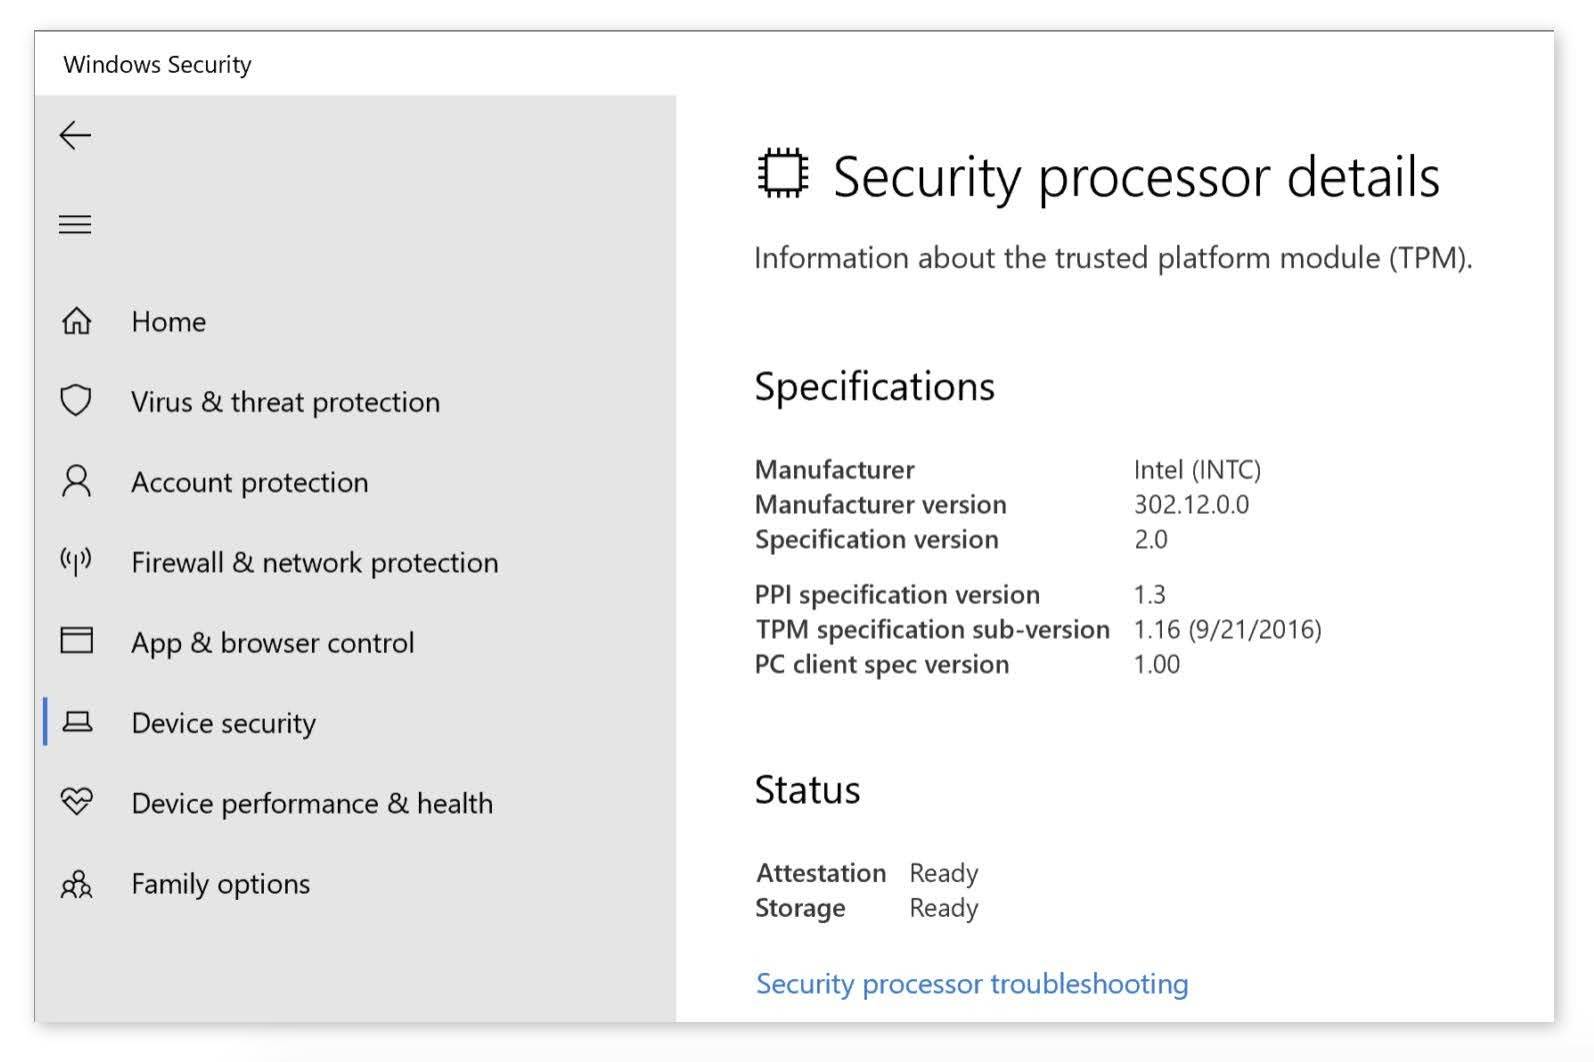 If the TPM 2.0 is enabled, you'll see a link to the Security processor details page under Security processor.